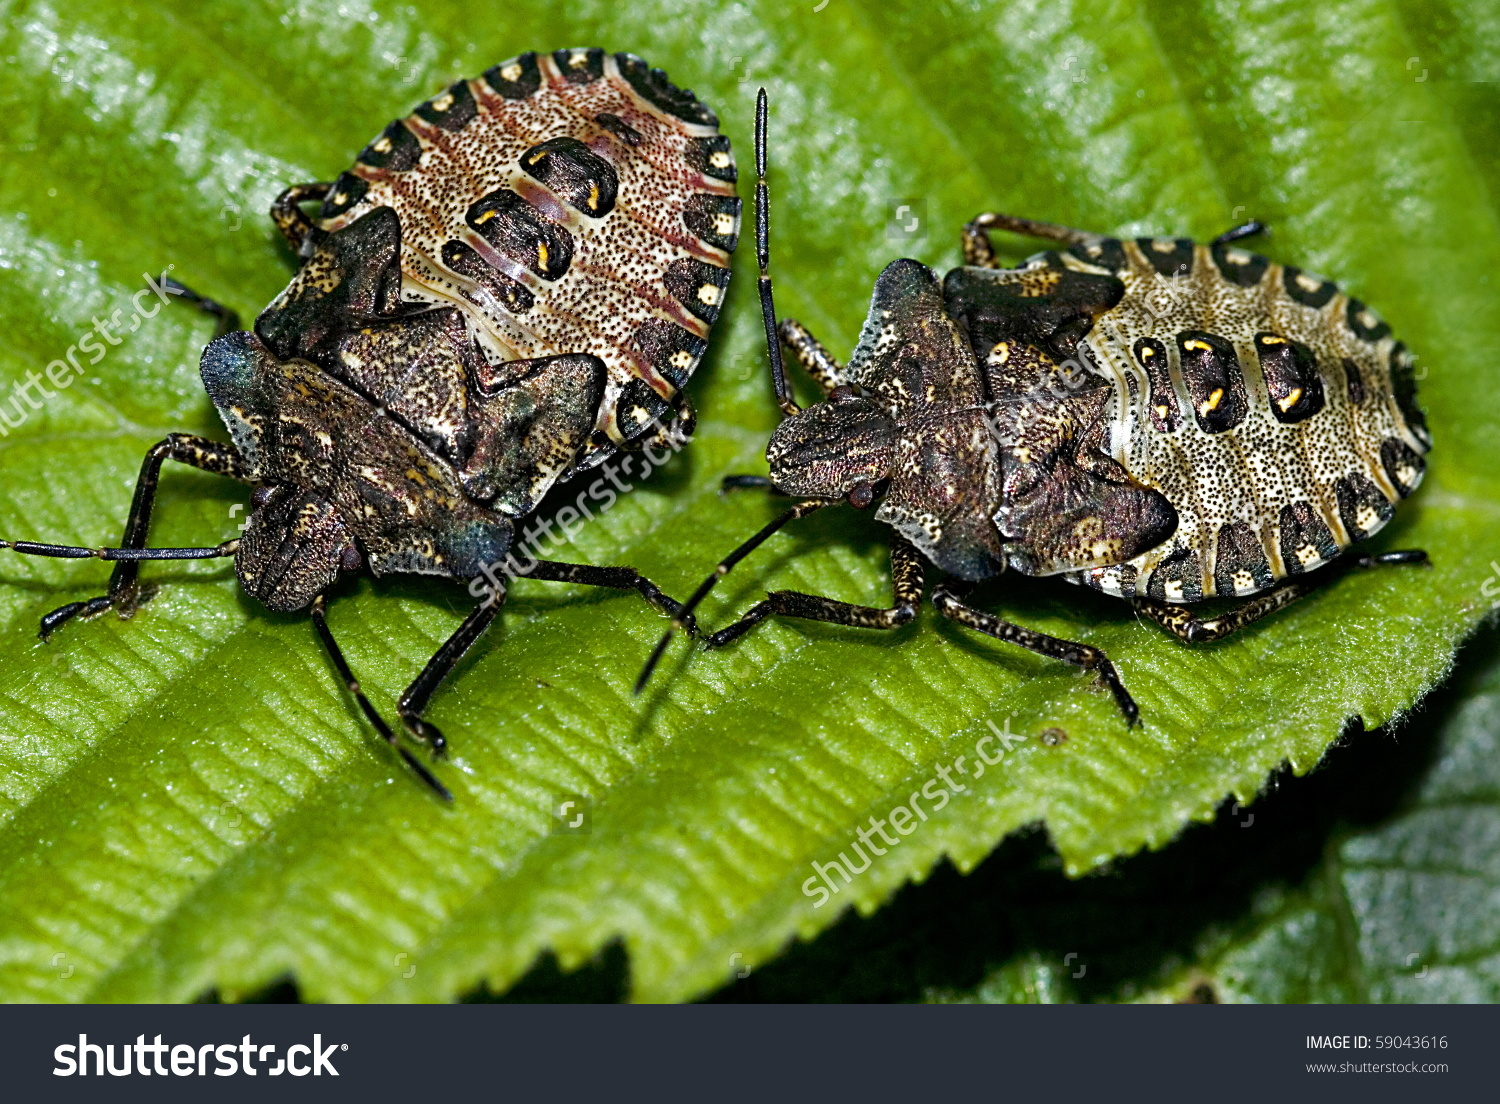 Two Nymphs Of The Forest Bug (Pentatoma Rufipes) On A Beech Leaf.